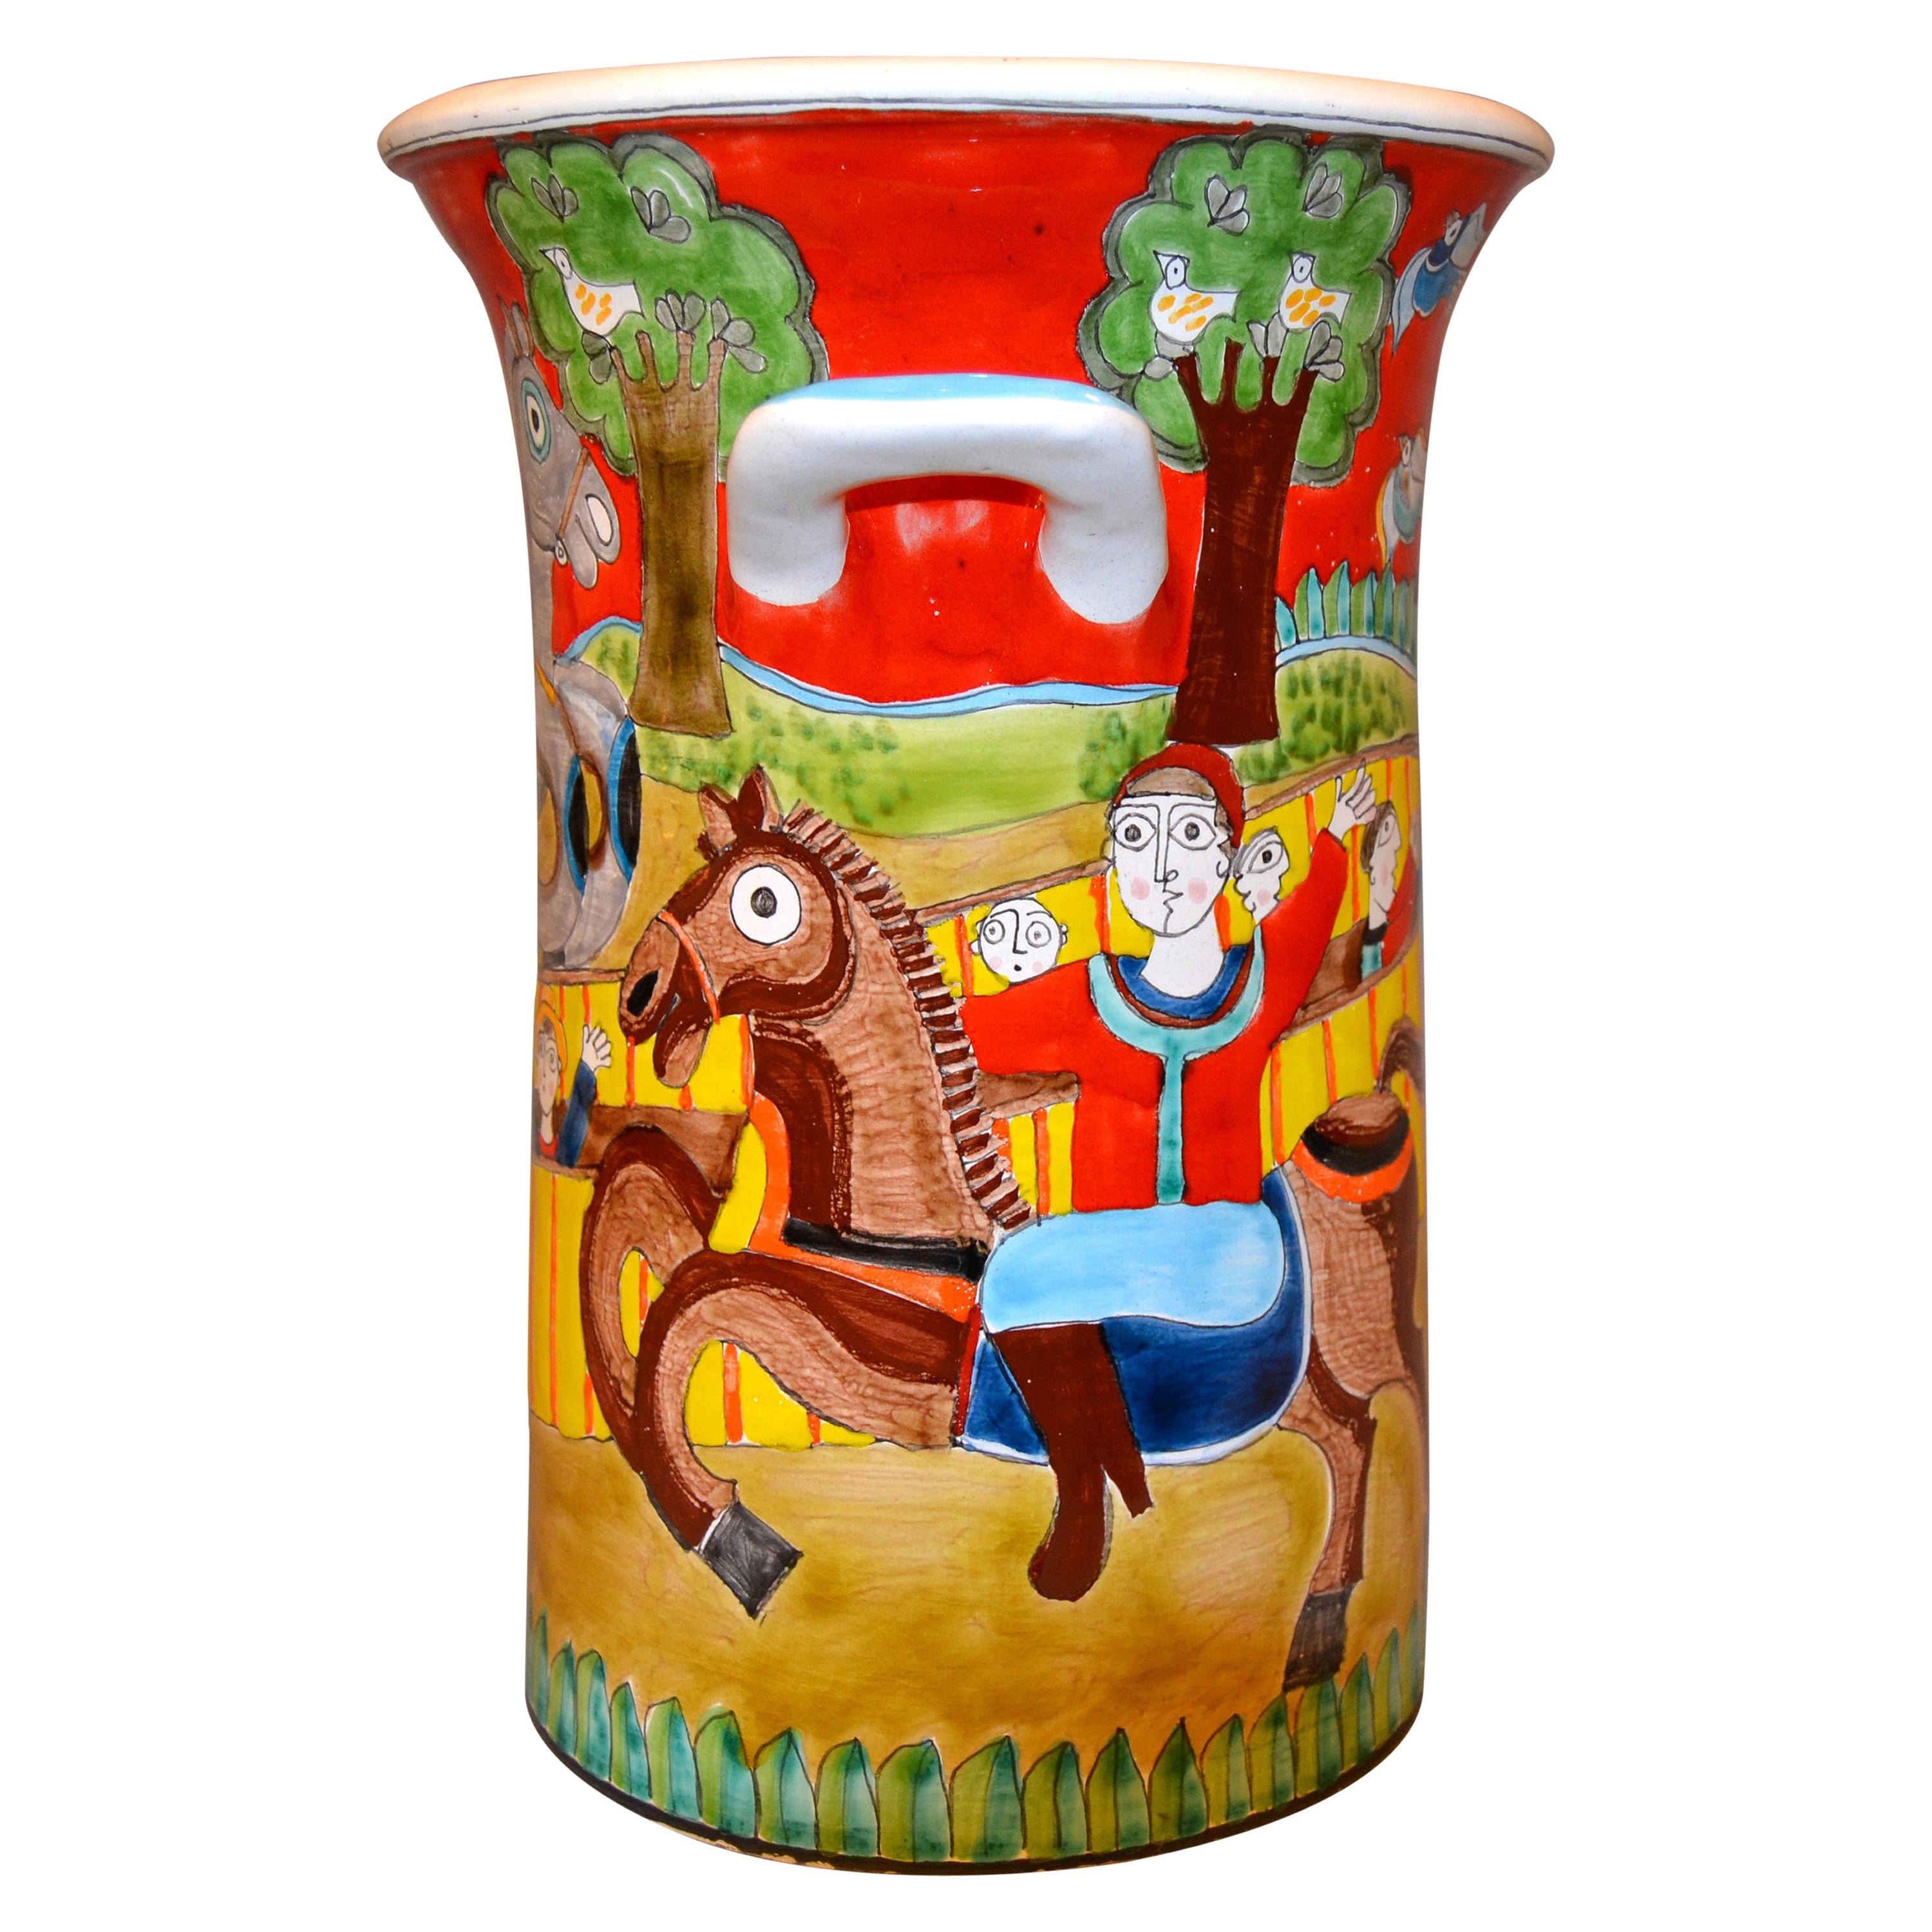 Desimone Hand Painted Art Pottery Vase, Vessel with Handles Circus Horses Italy